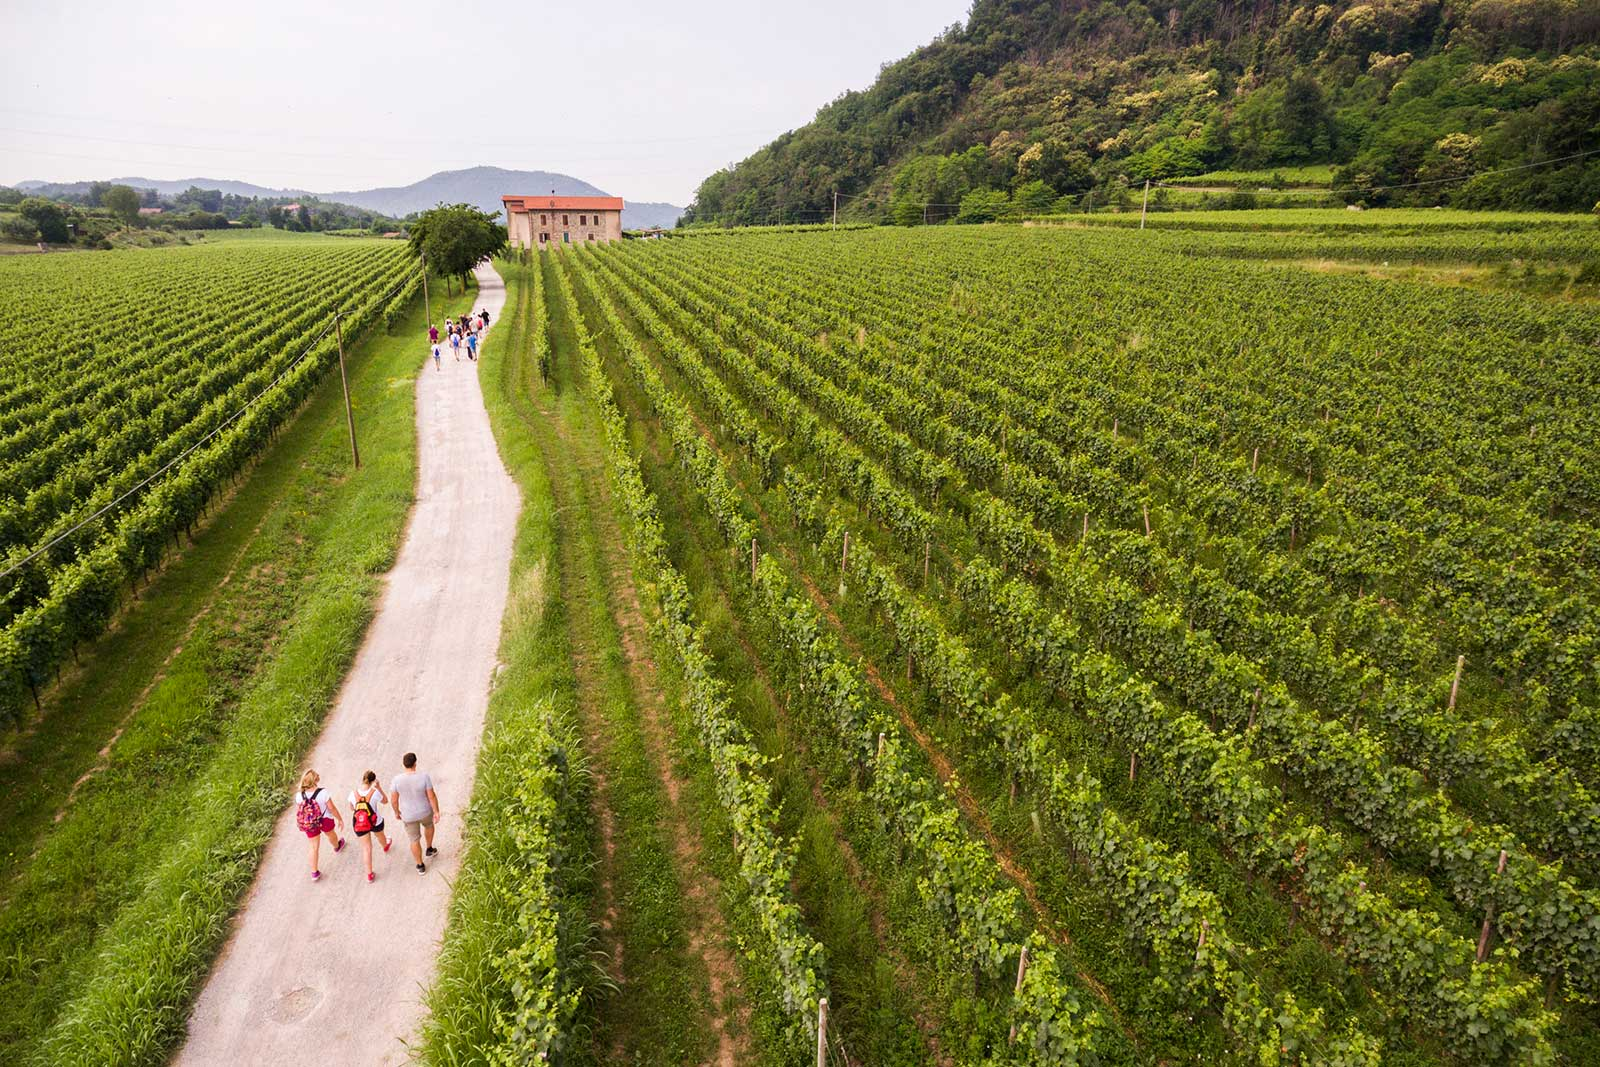 An aerial view of Franciacorta's vineyards. ©Fabio Cattabiani/Consorzio di Franciacorta